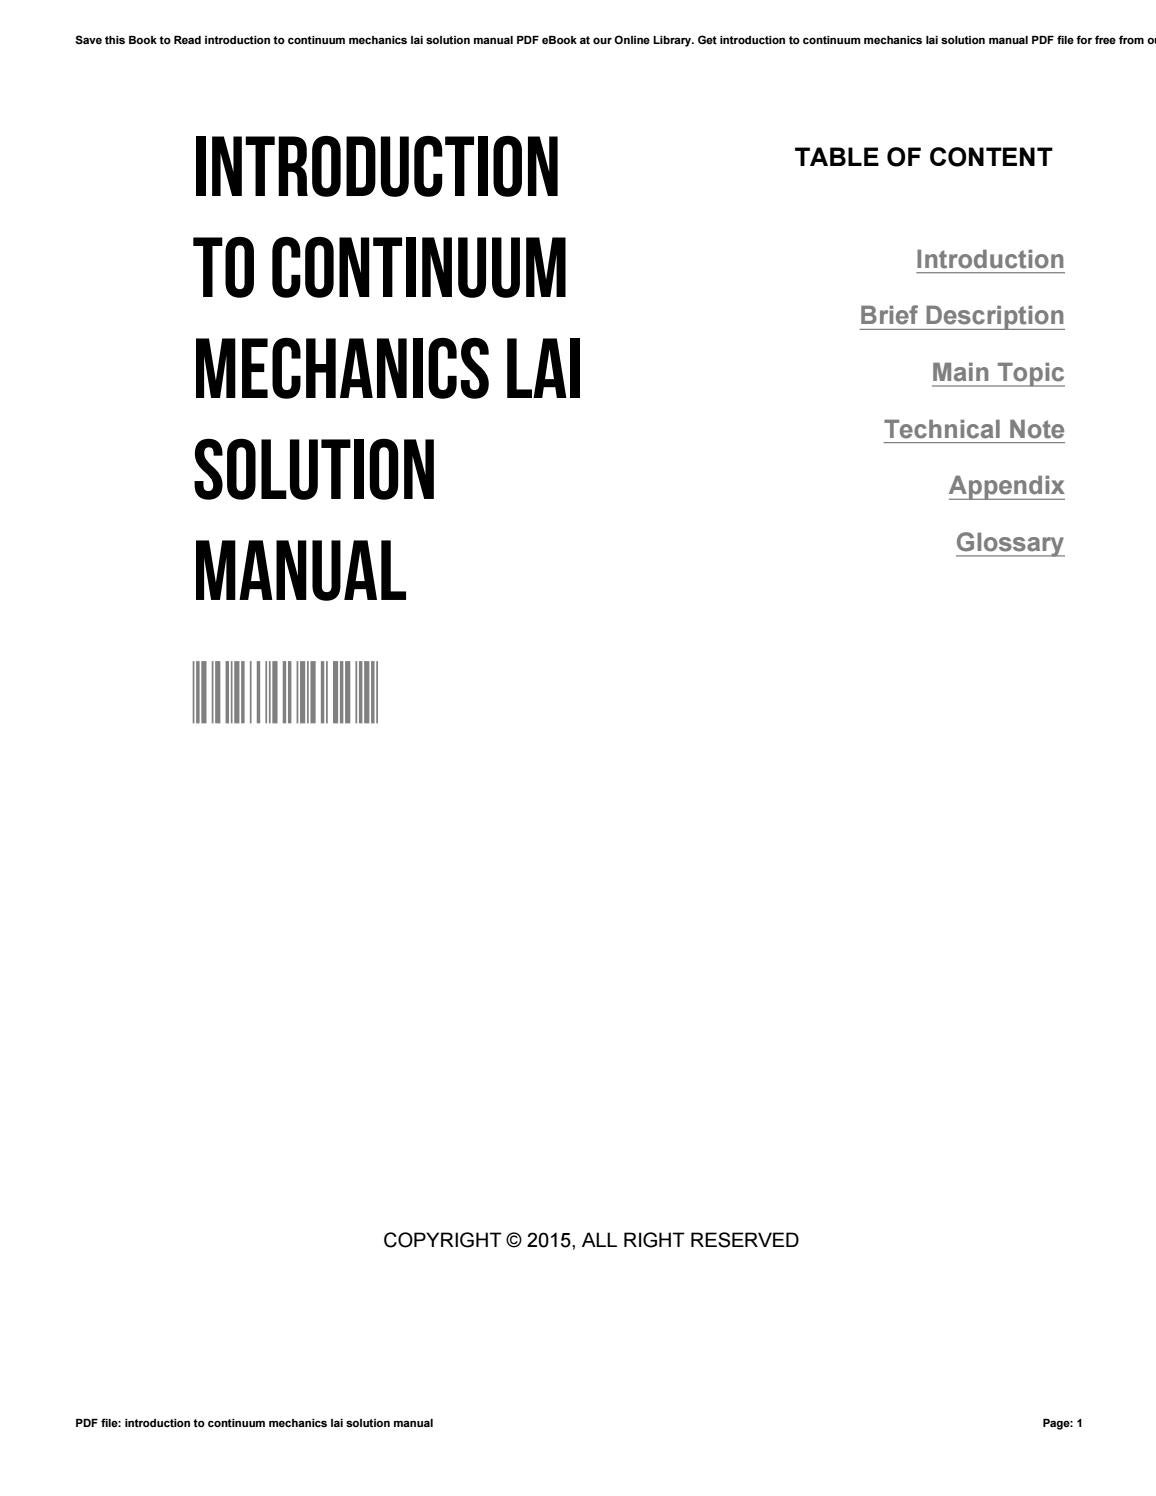 Introduction to continuum mechanics lai solution manual by  FrancesHammond1250 - issuu